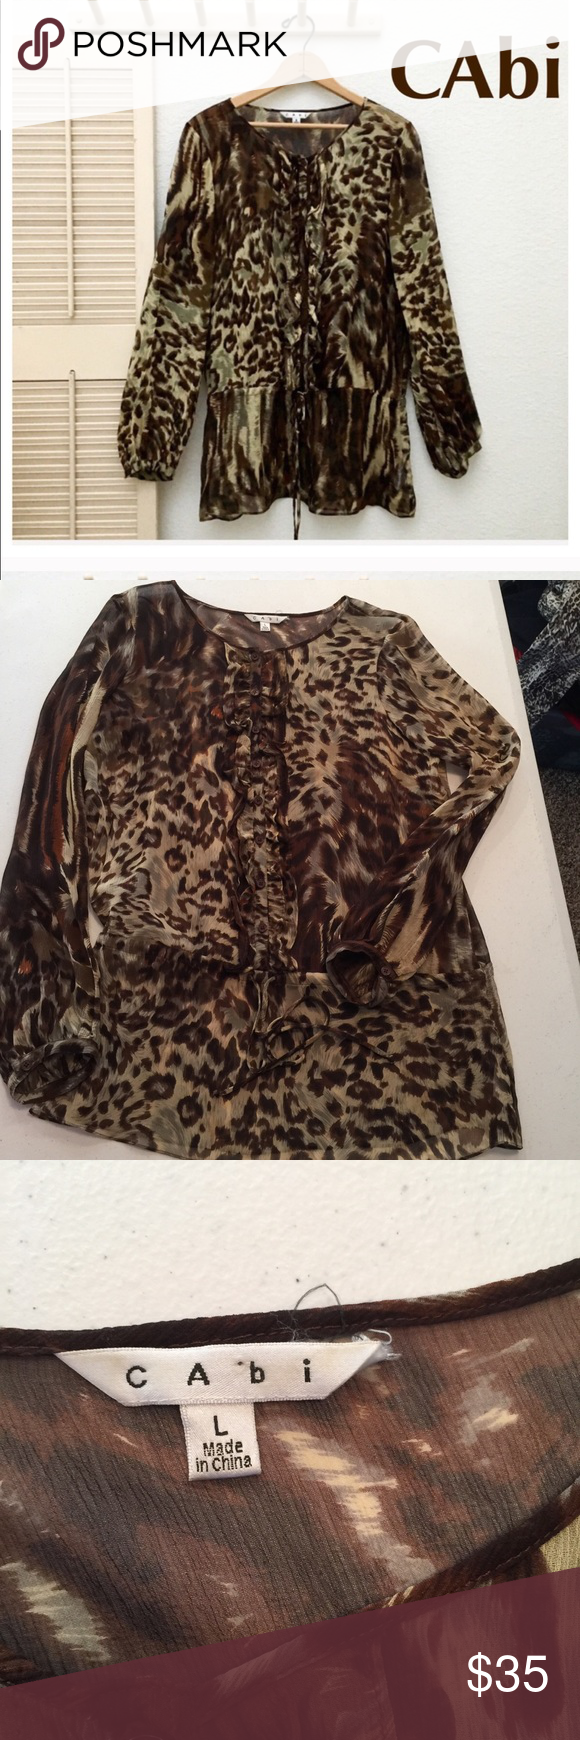 b068d0681ee8 CAbi sheer animal print top Size large 100% silk ''Tie at waistband Save